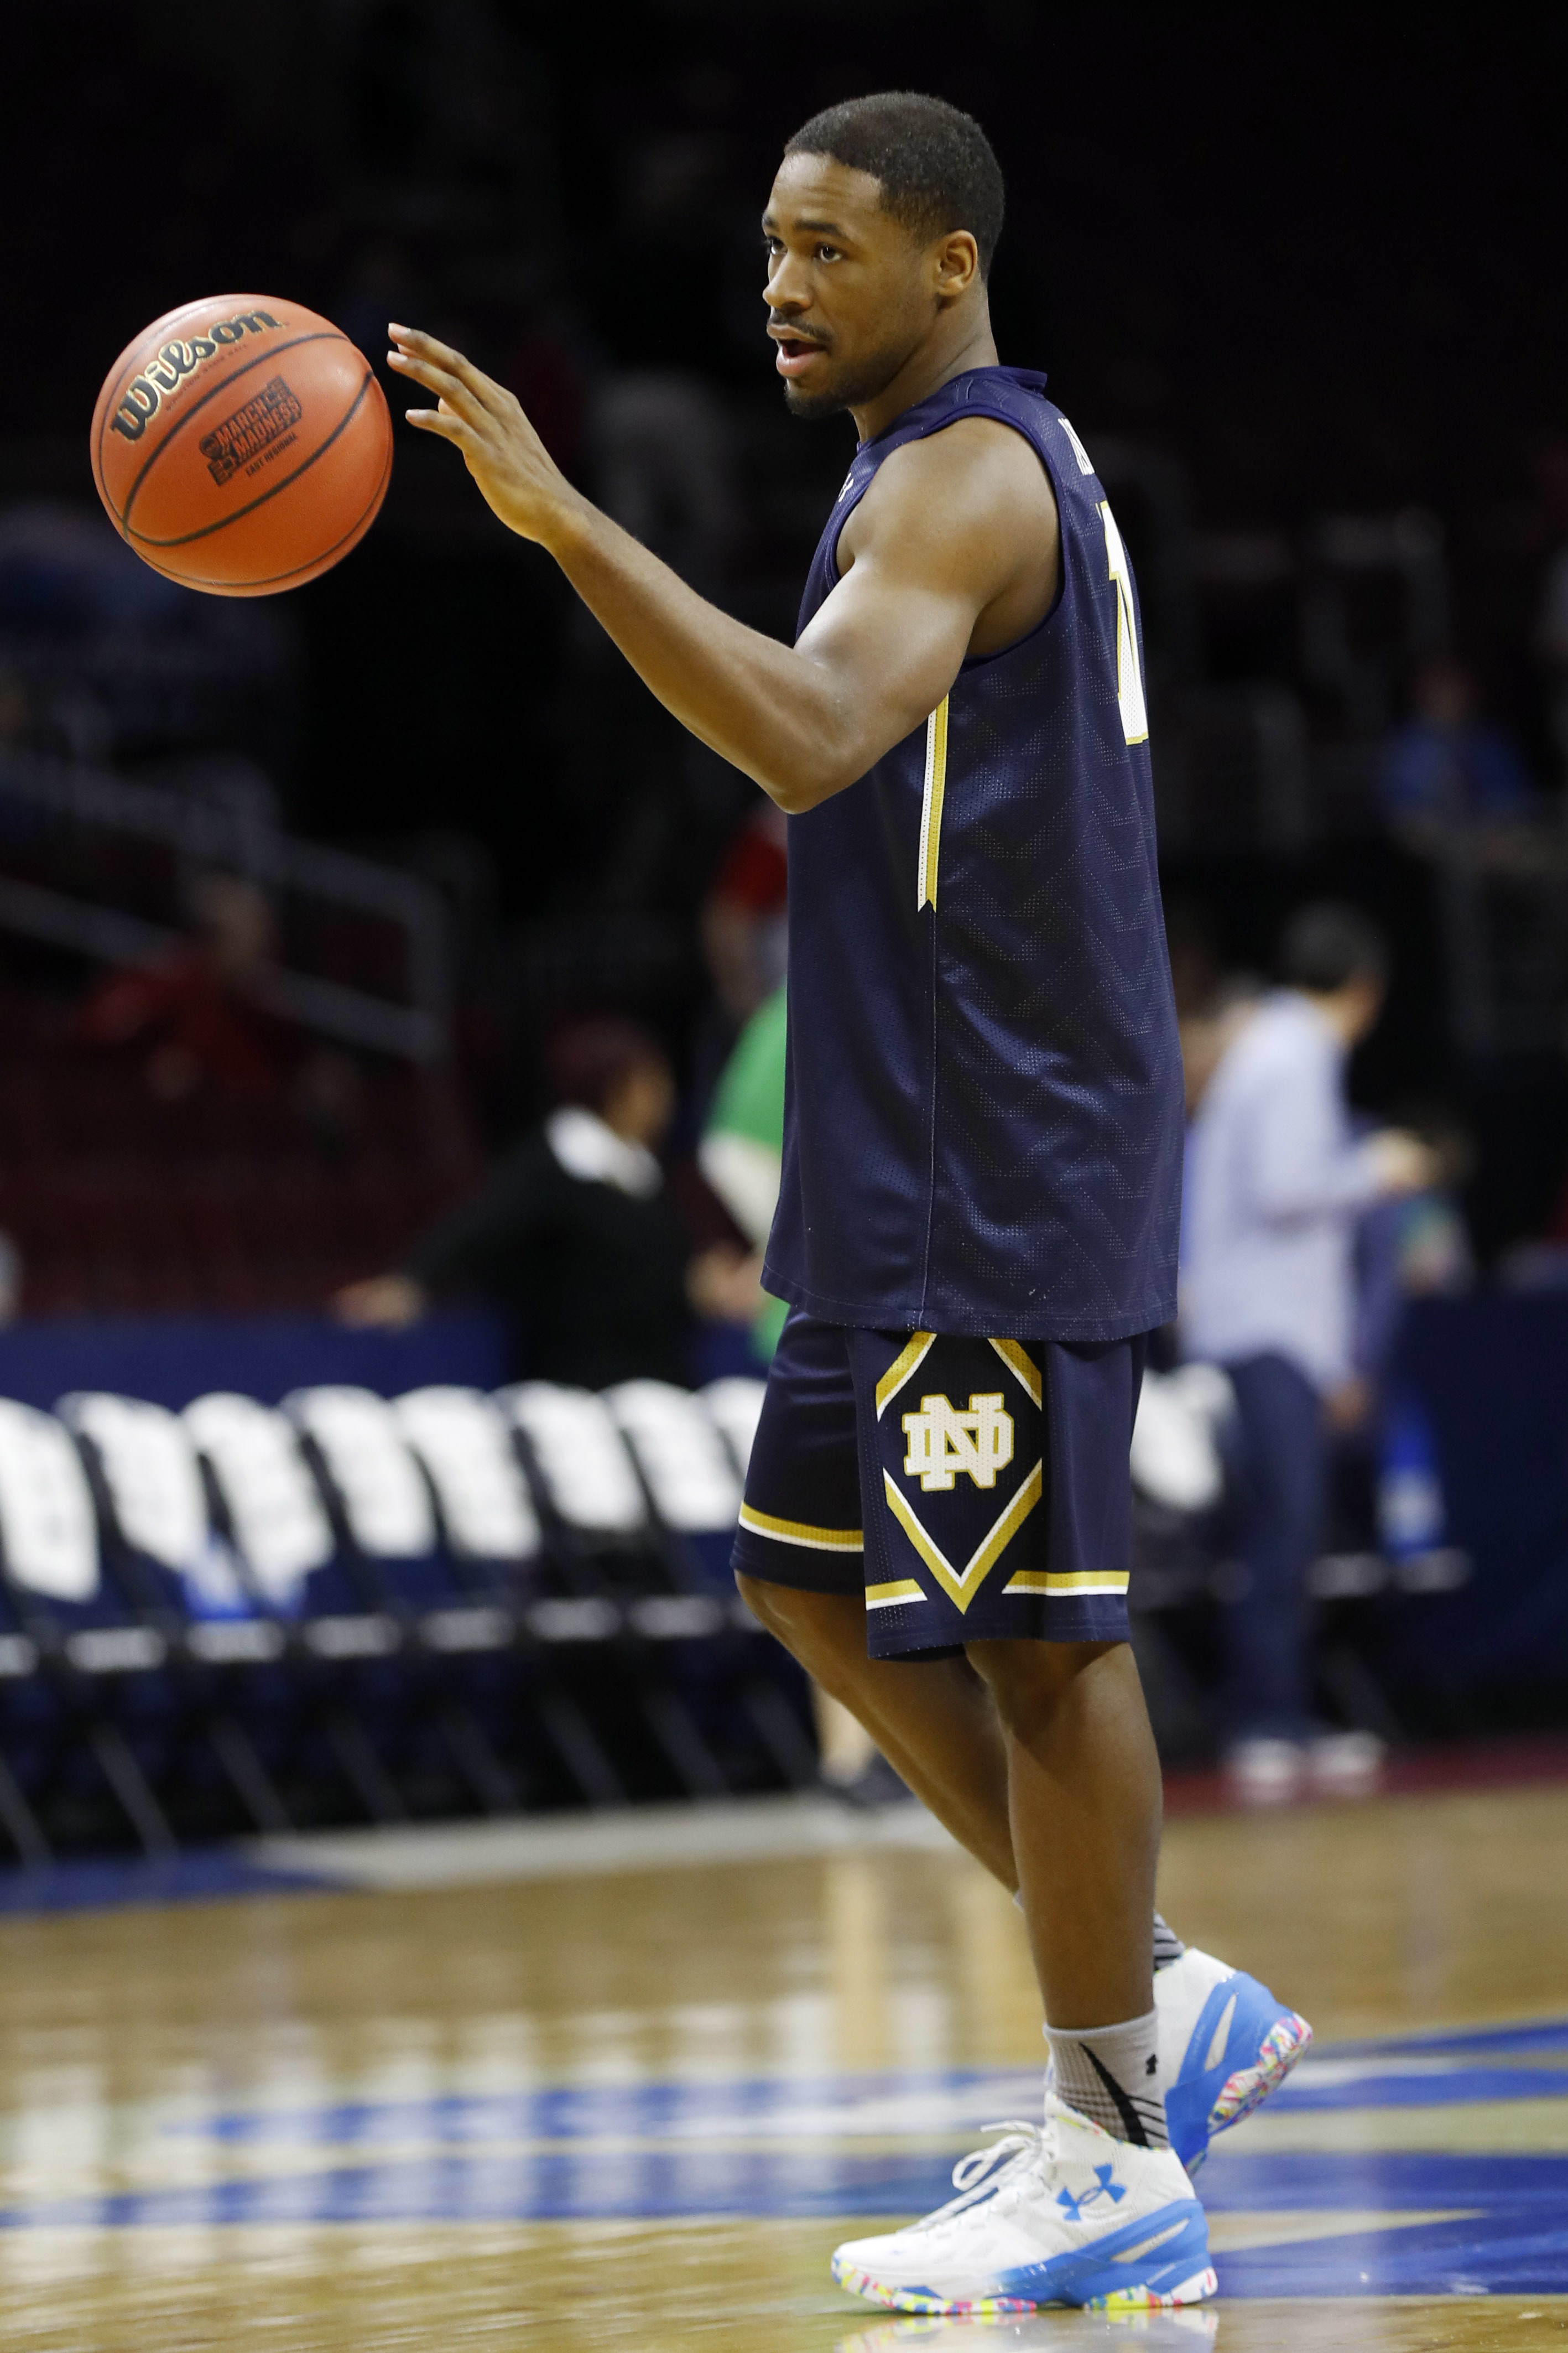 Notre Dame's Demetrius Jackson warms up during college basketball practice, Thursday, March 24, 2016, in Philadelphia. Notre Dame plays against Wisconsin in a regional semifinal game in the NCAA Tournament on Friday. (AP Photo/Chris Szagola)